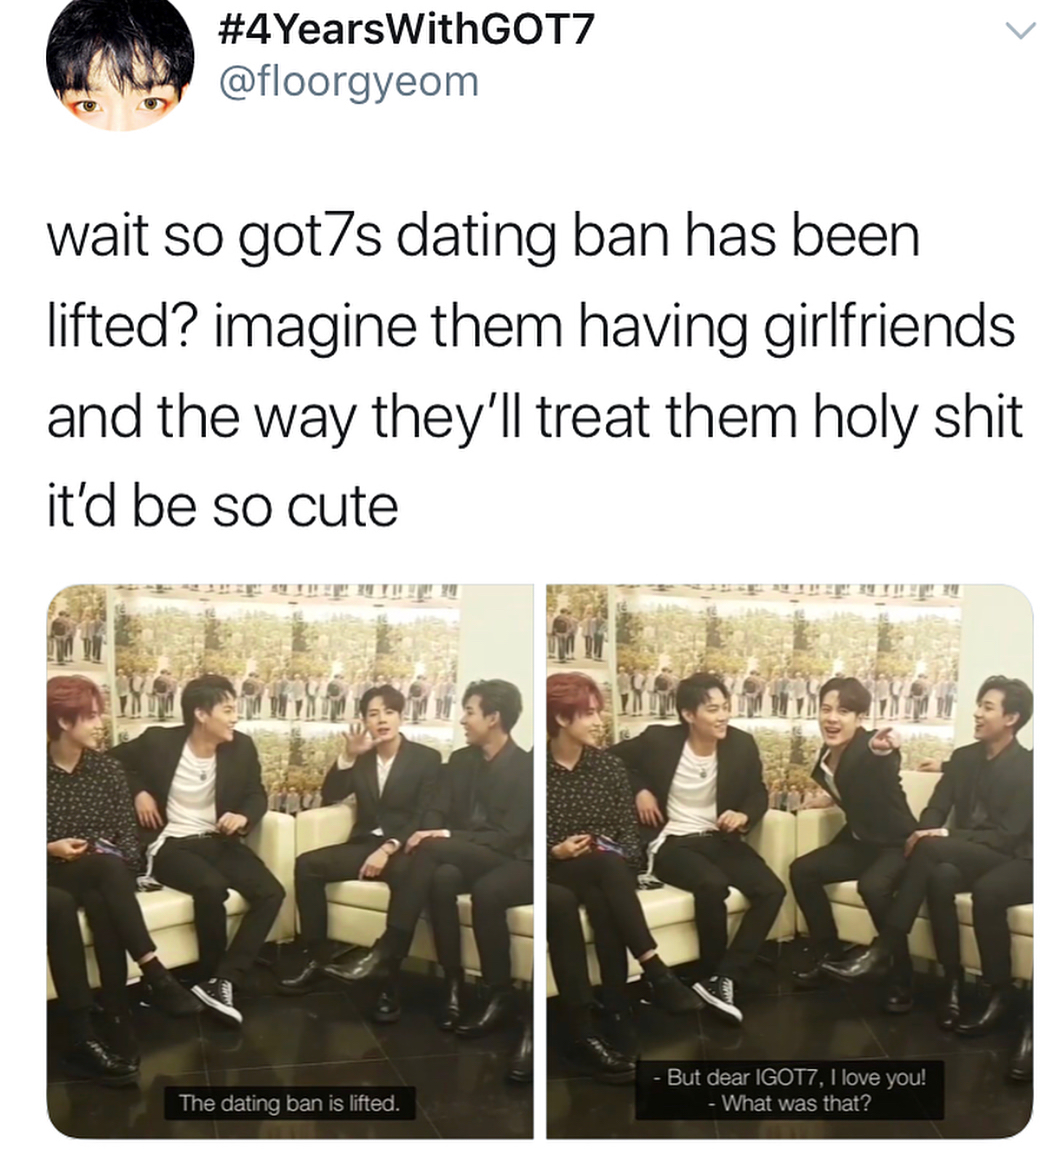 Got7 dating ban lifted